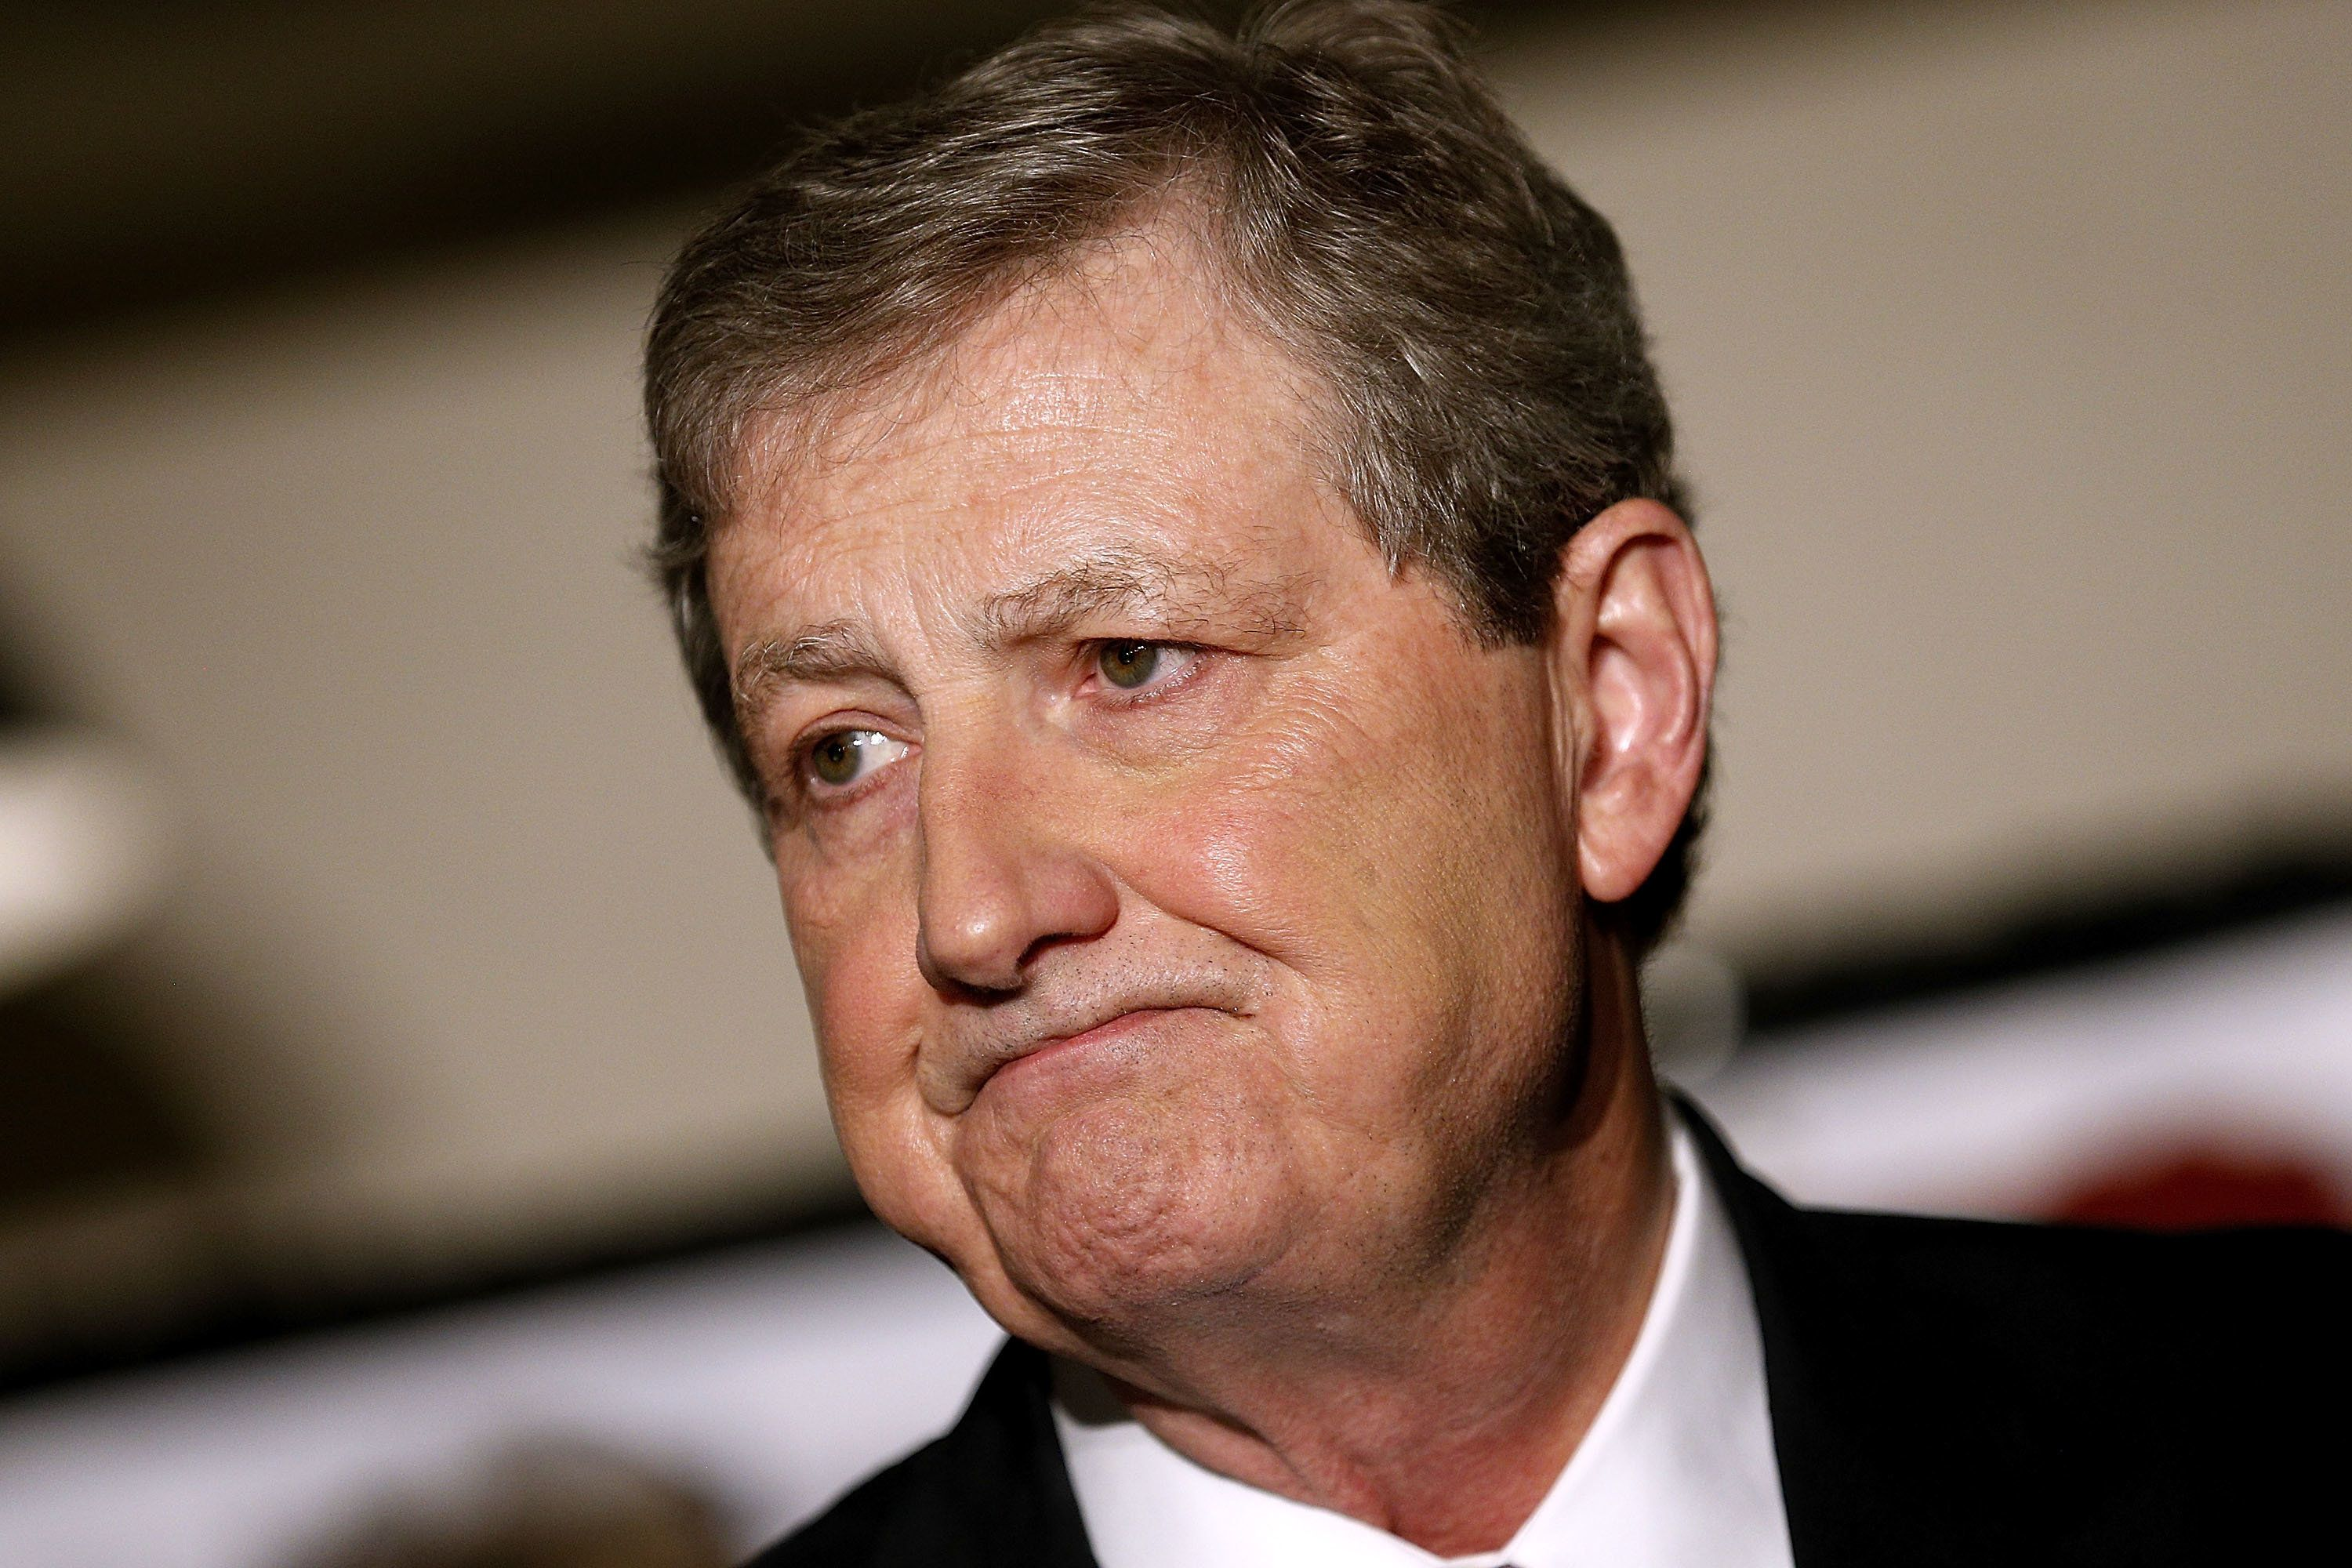 BATON ROUGE, LA - DECEMBER 10:  U.S. Senate Republican candidate John Kennedy delivers a victory speech during an election party on December 10, 2016 in Baton Rouge, Louisiana. Kennedy's victory further strengthens the Republican's majority hold over the U.S. Senate.  (Photo by Jonathan Bachman/Getty Images)